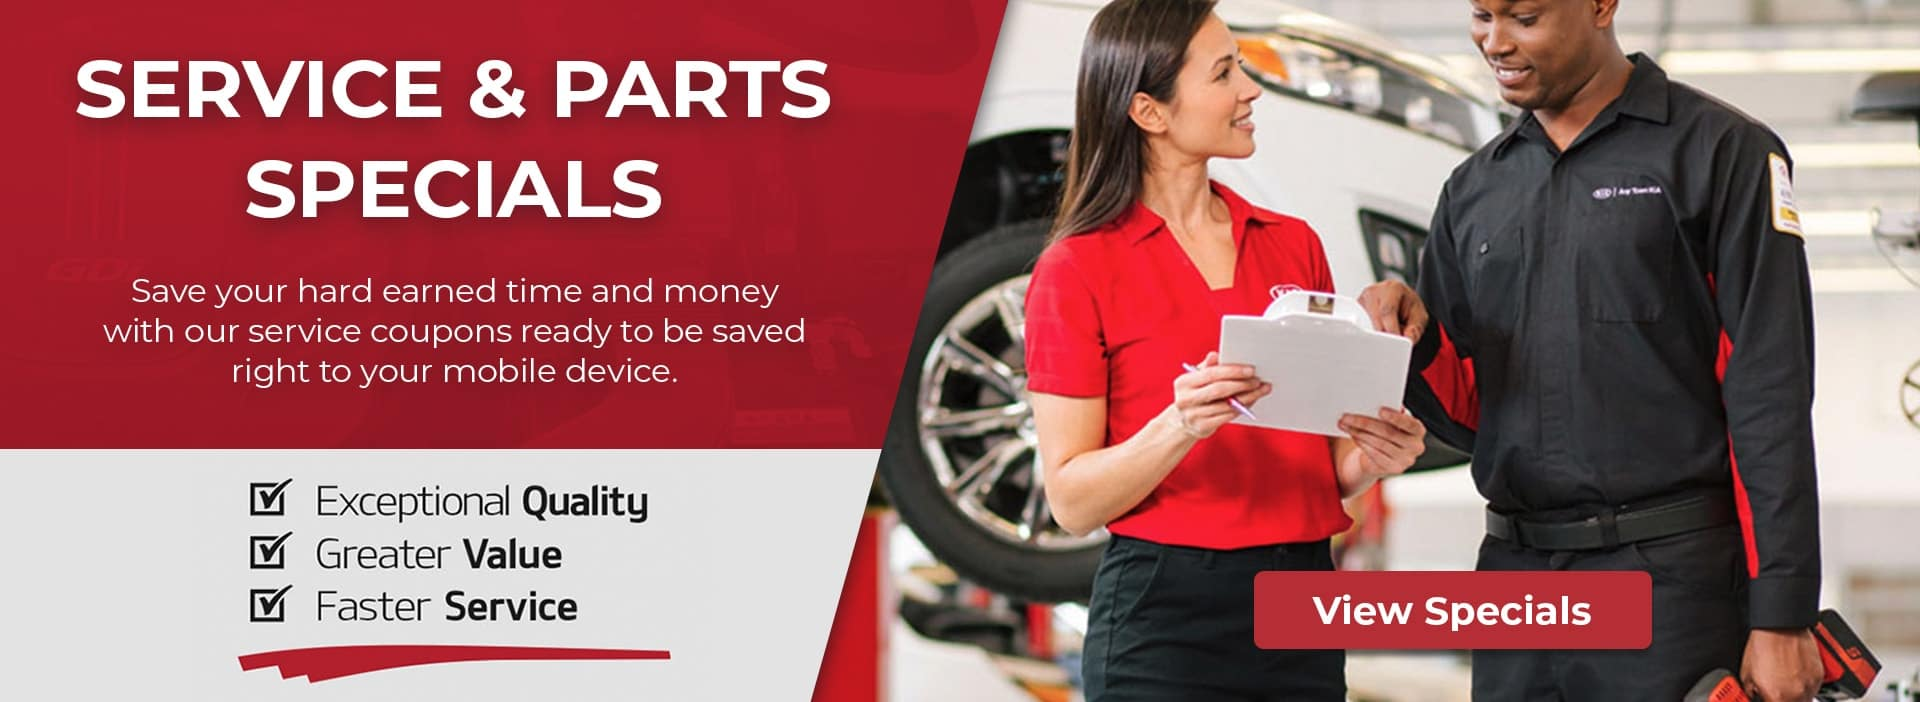 Service Parts Specials In Indianapolis In Ray Skillman Kia